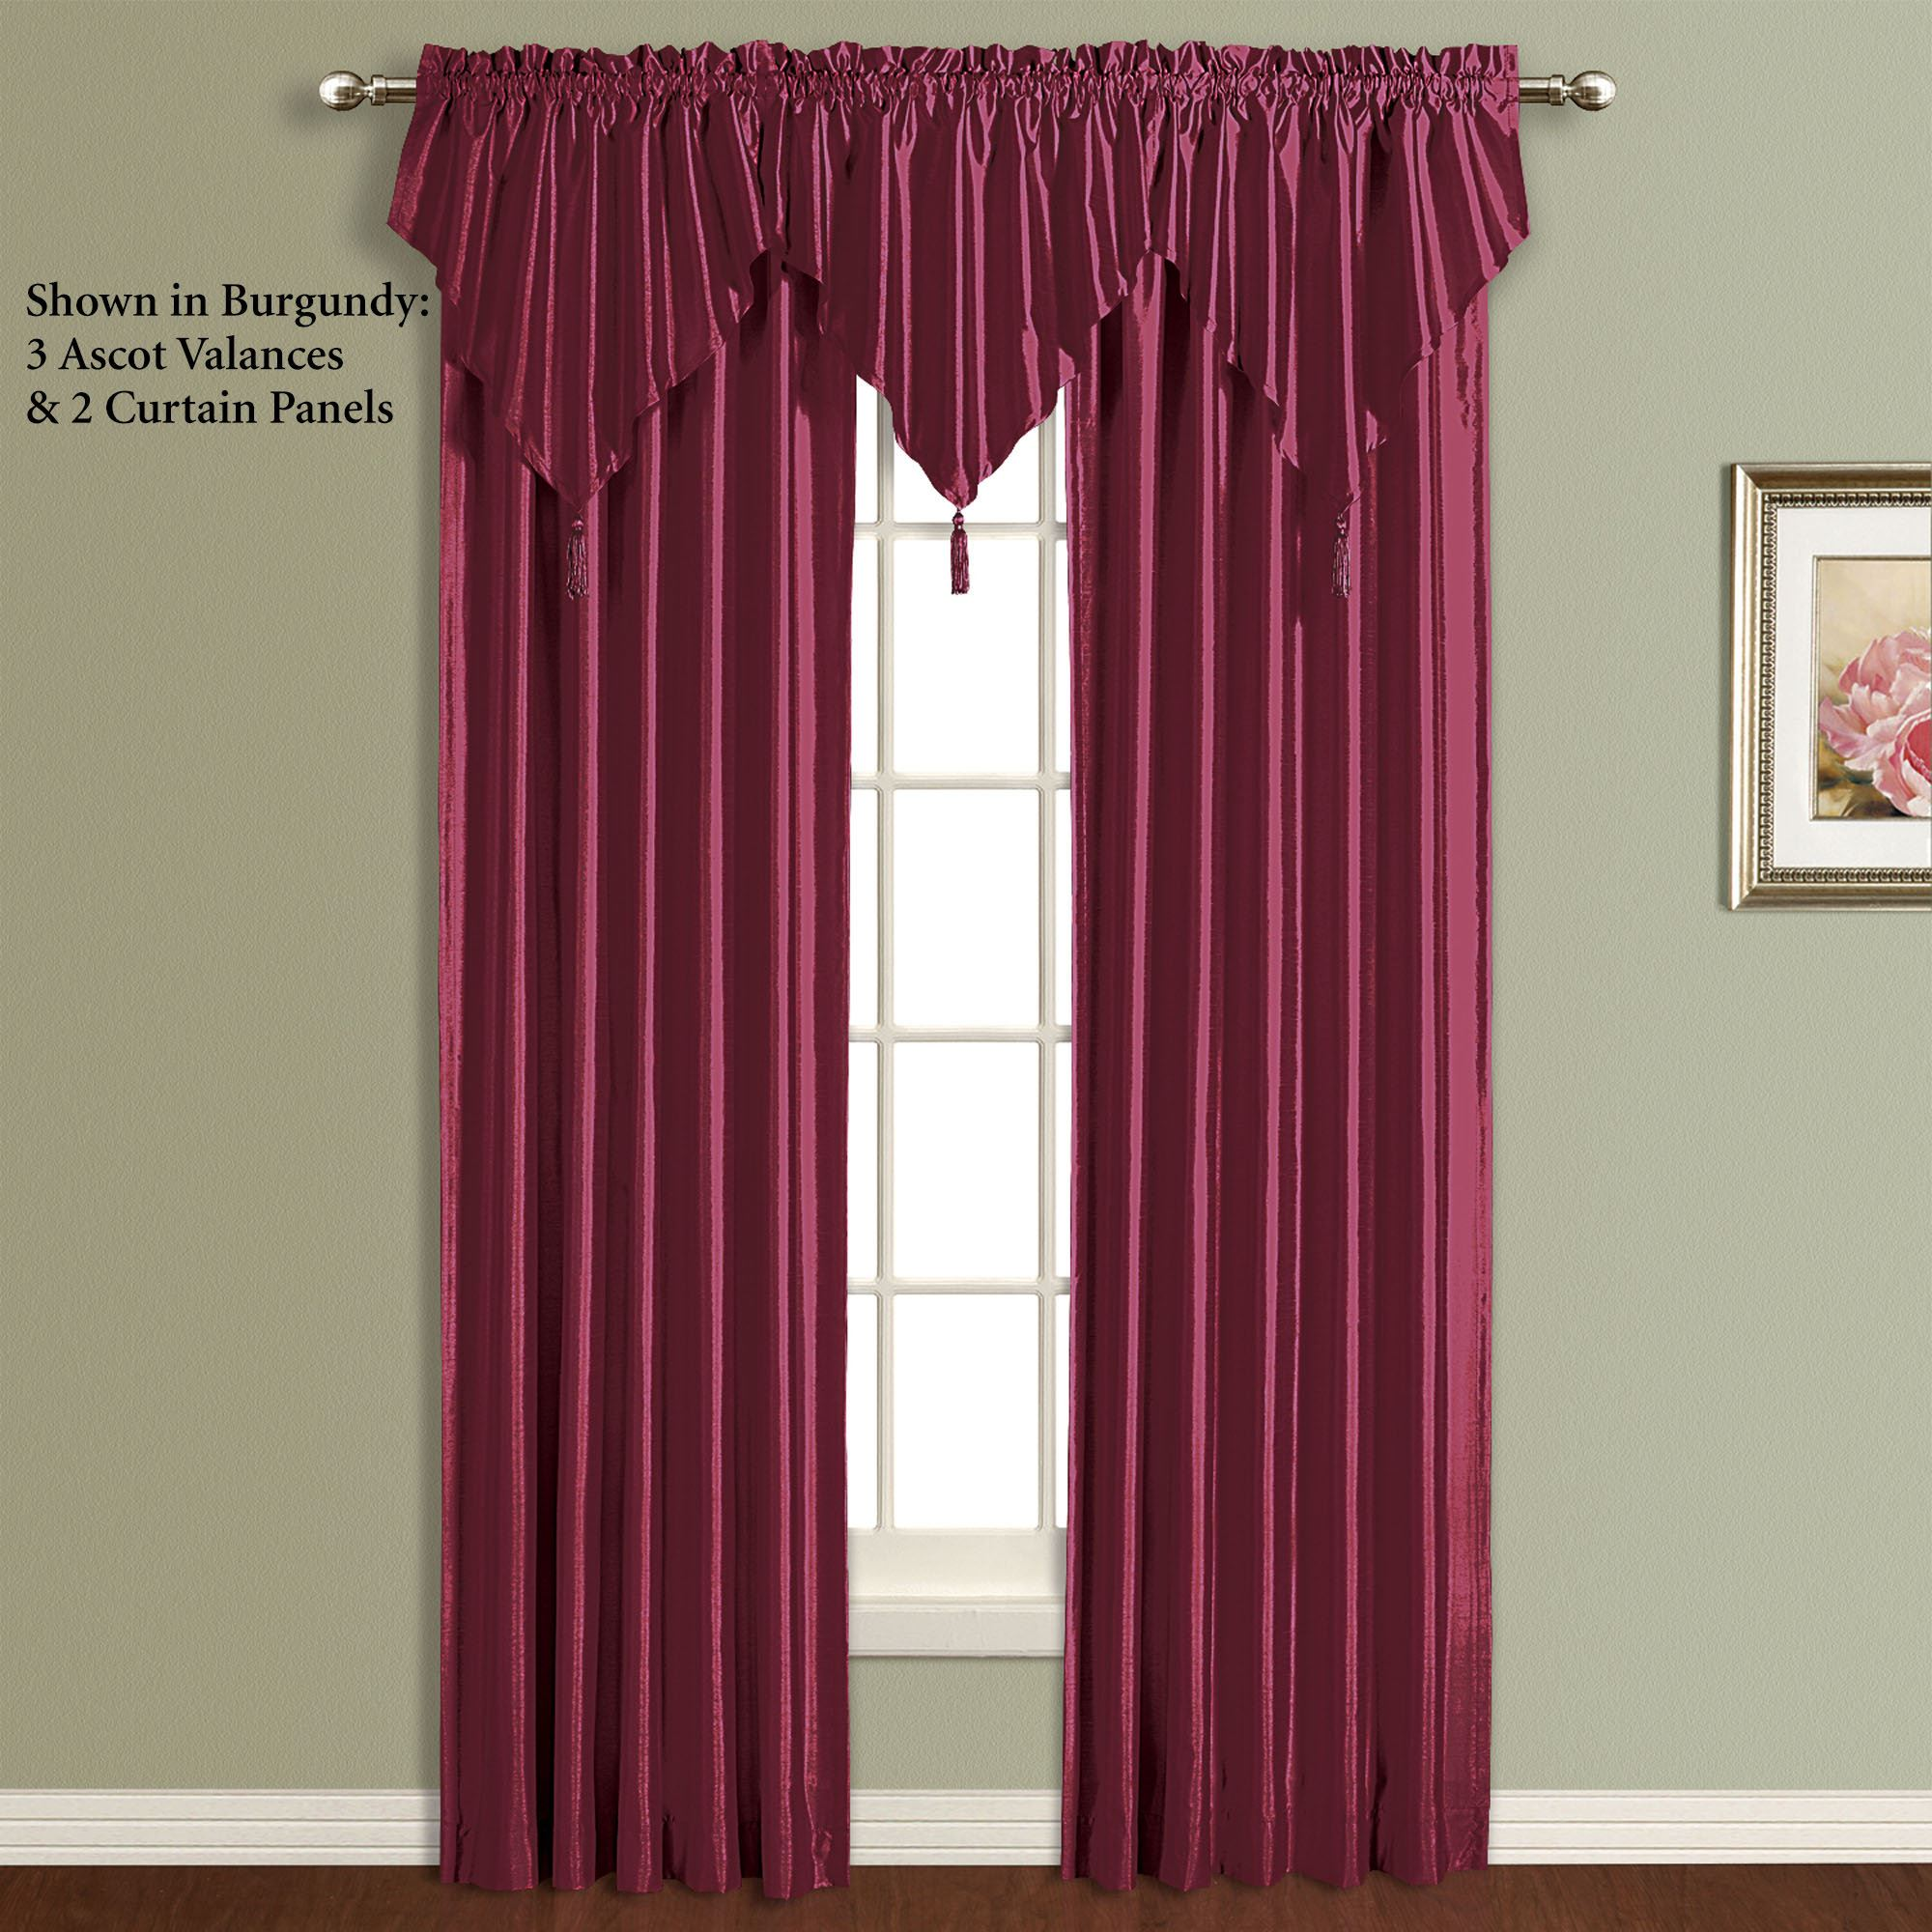 living clearance two kohls and for treatments curtains valances of kitchen jcpenney walmart ideas contemporary sheer windows nordstrom types valance full story window curtain drapery size treat room